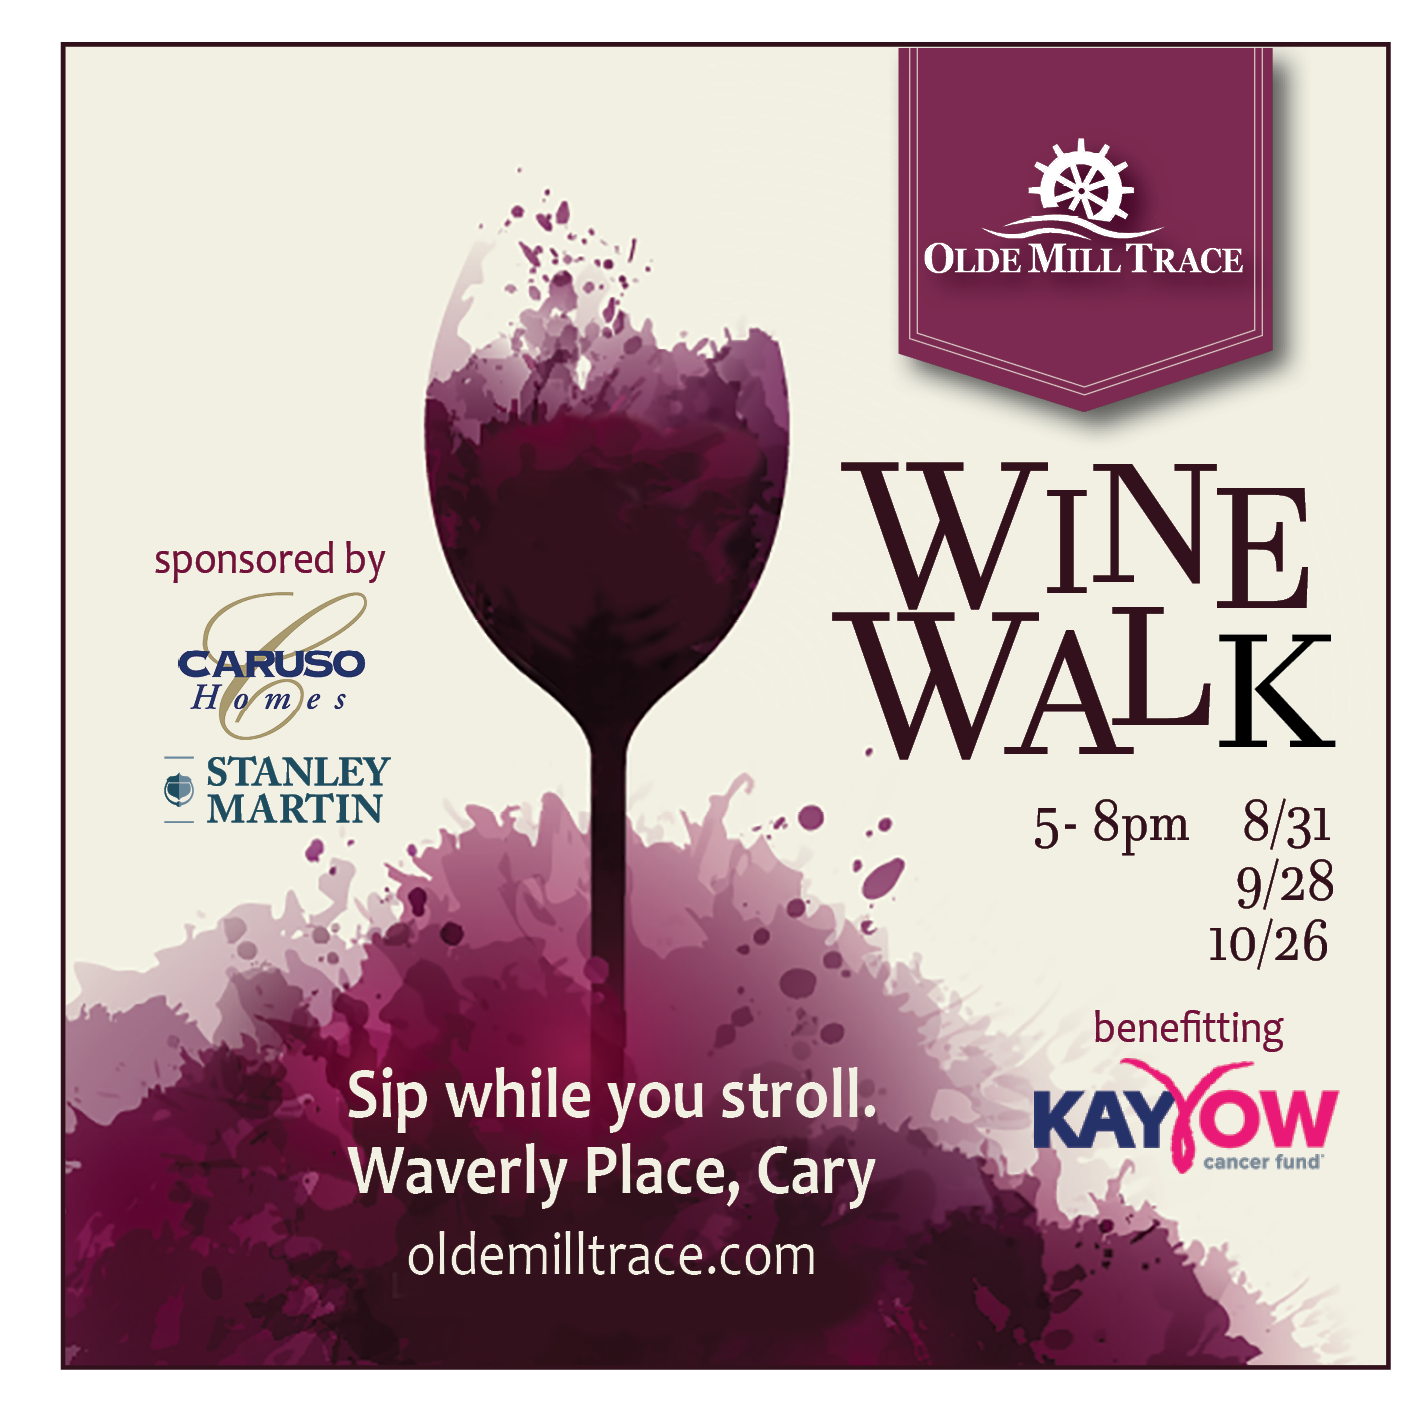 OMT Wine Walk Series EMarketing